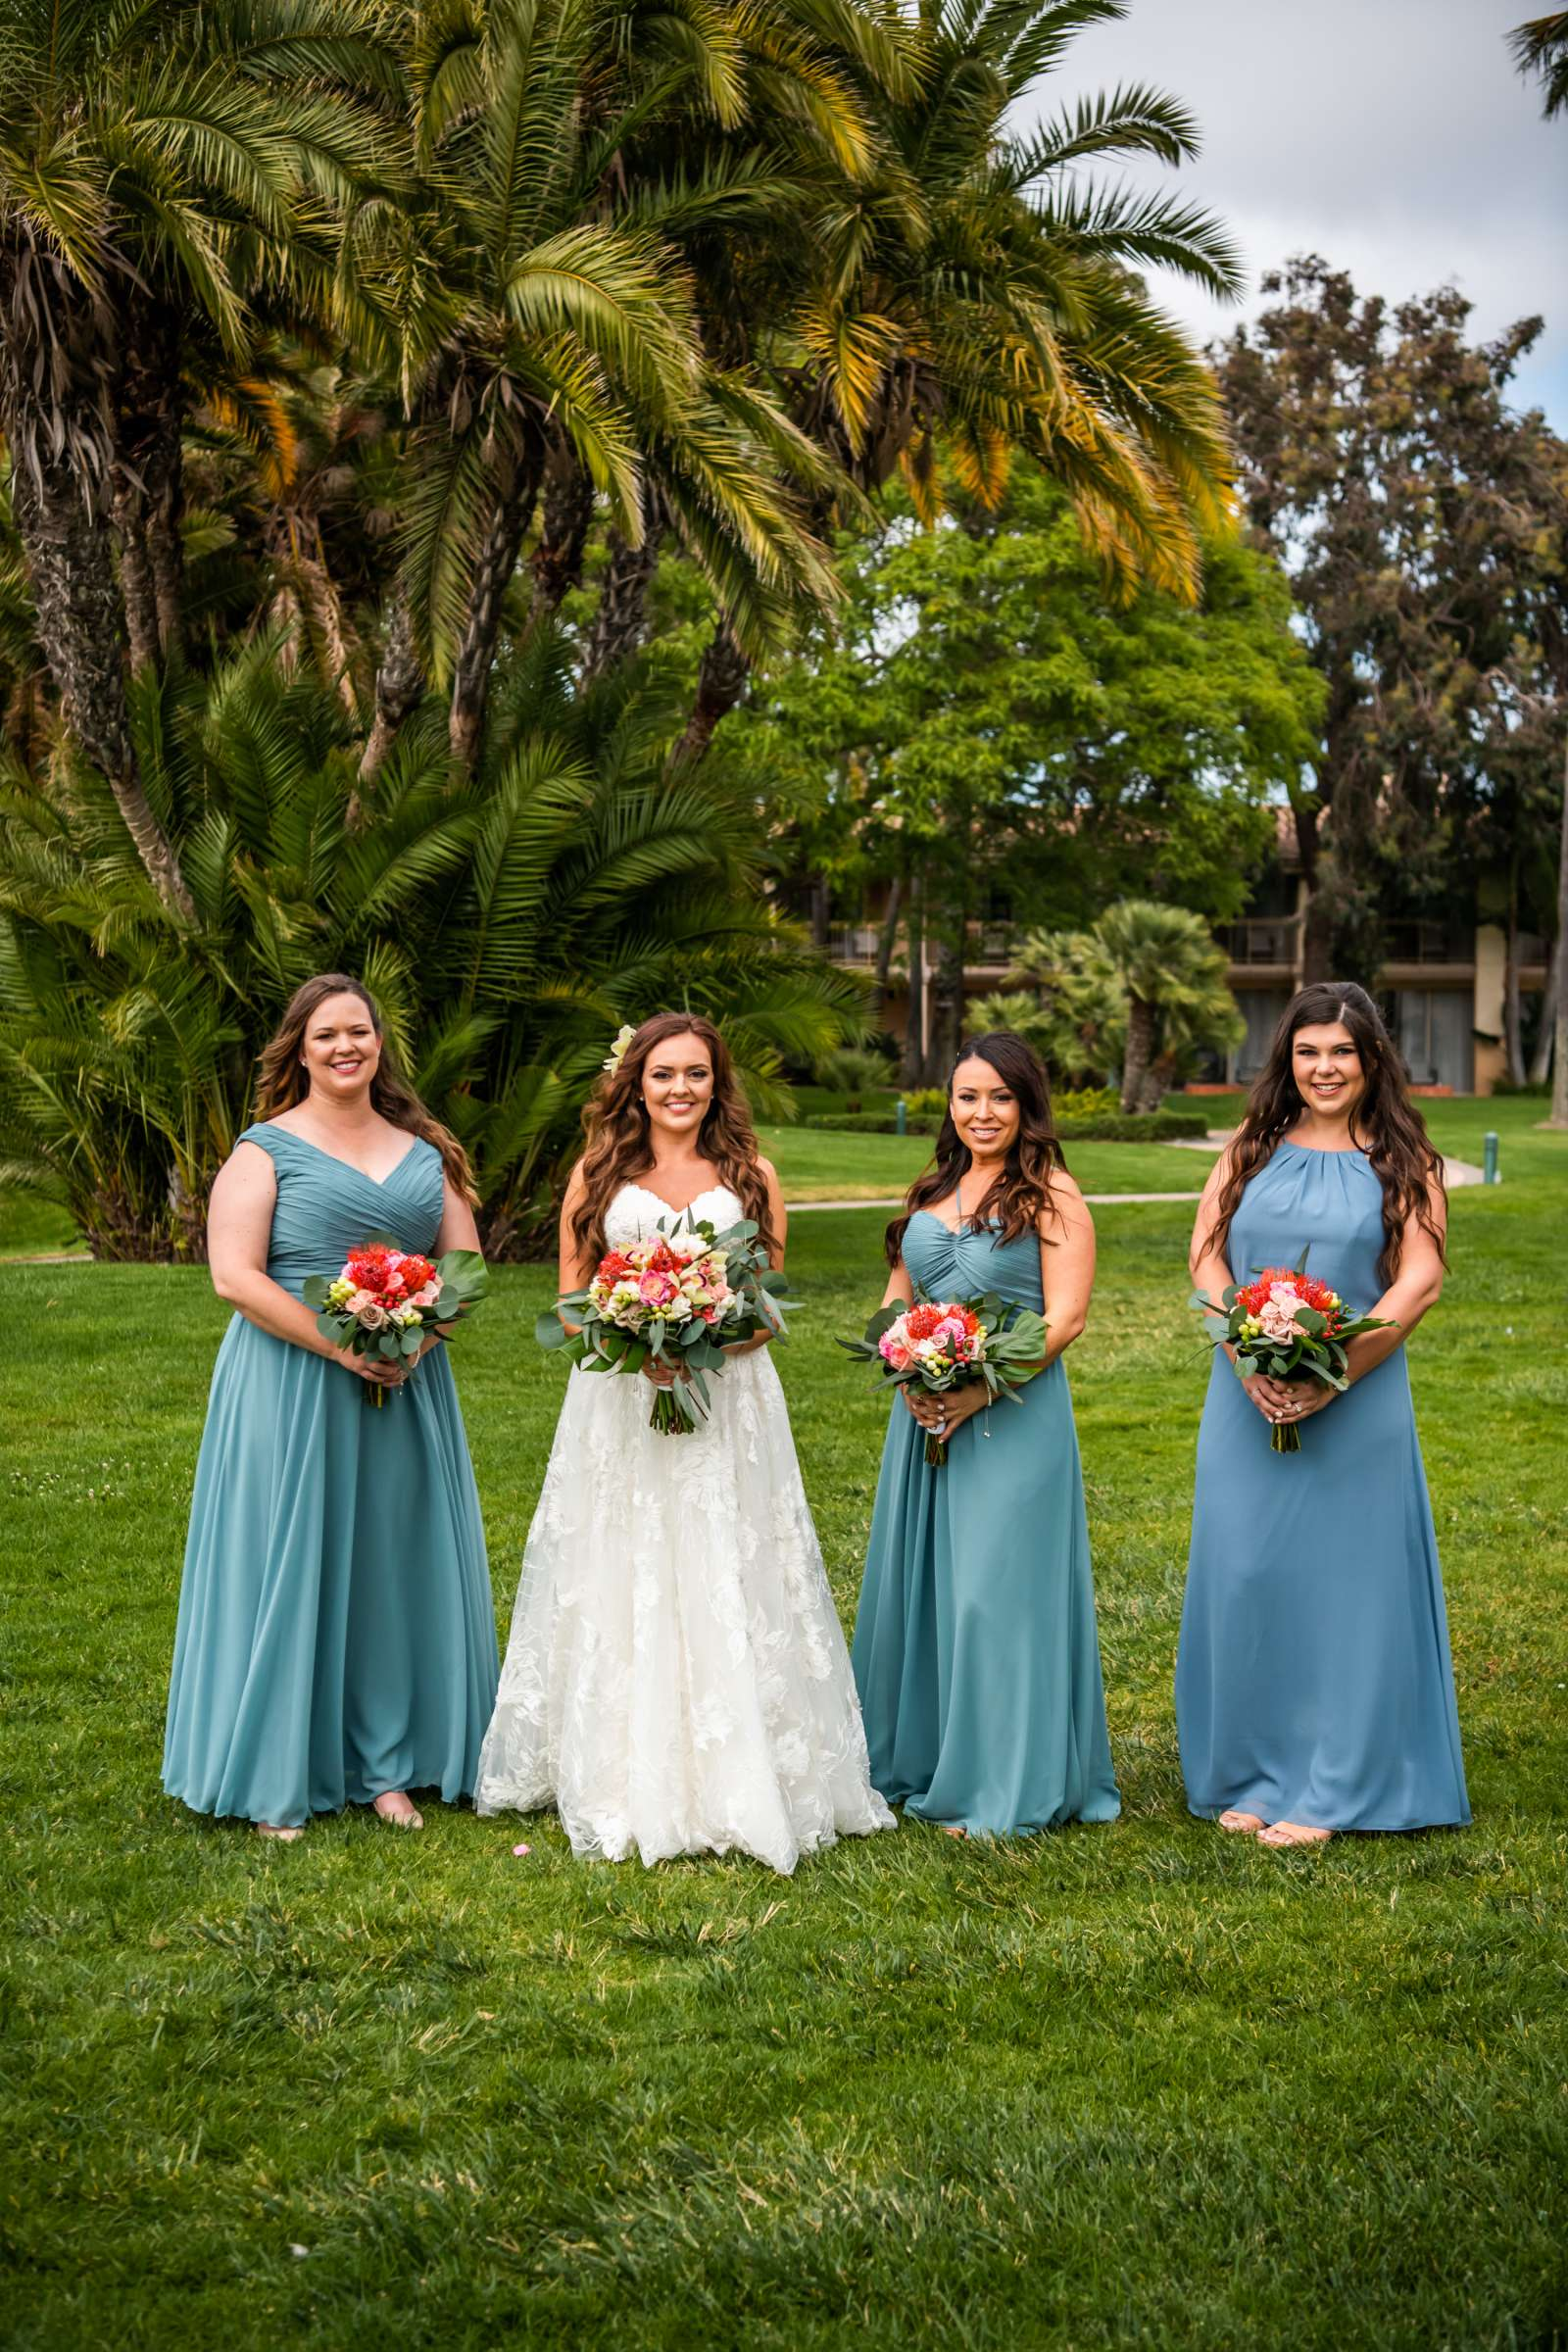 San Diego Mission Bay Resort Wedding coordinated by Cafe Au Love, Lauren and Adam Wedding Photo #103 by True Photography